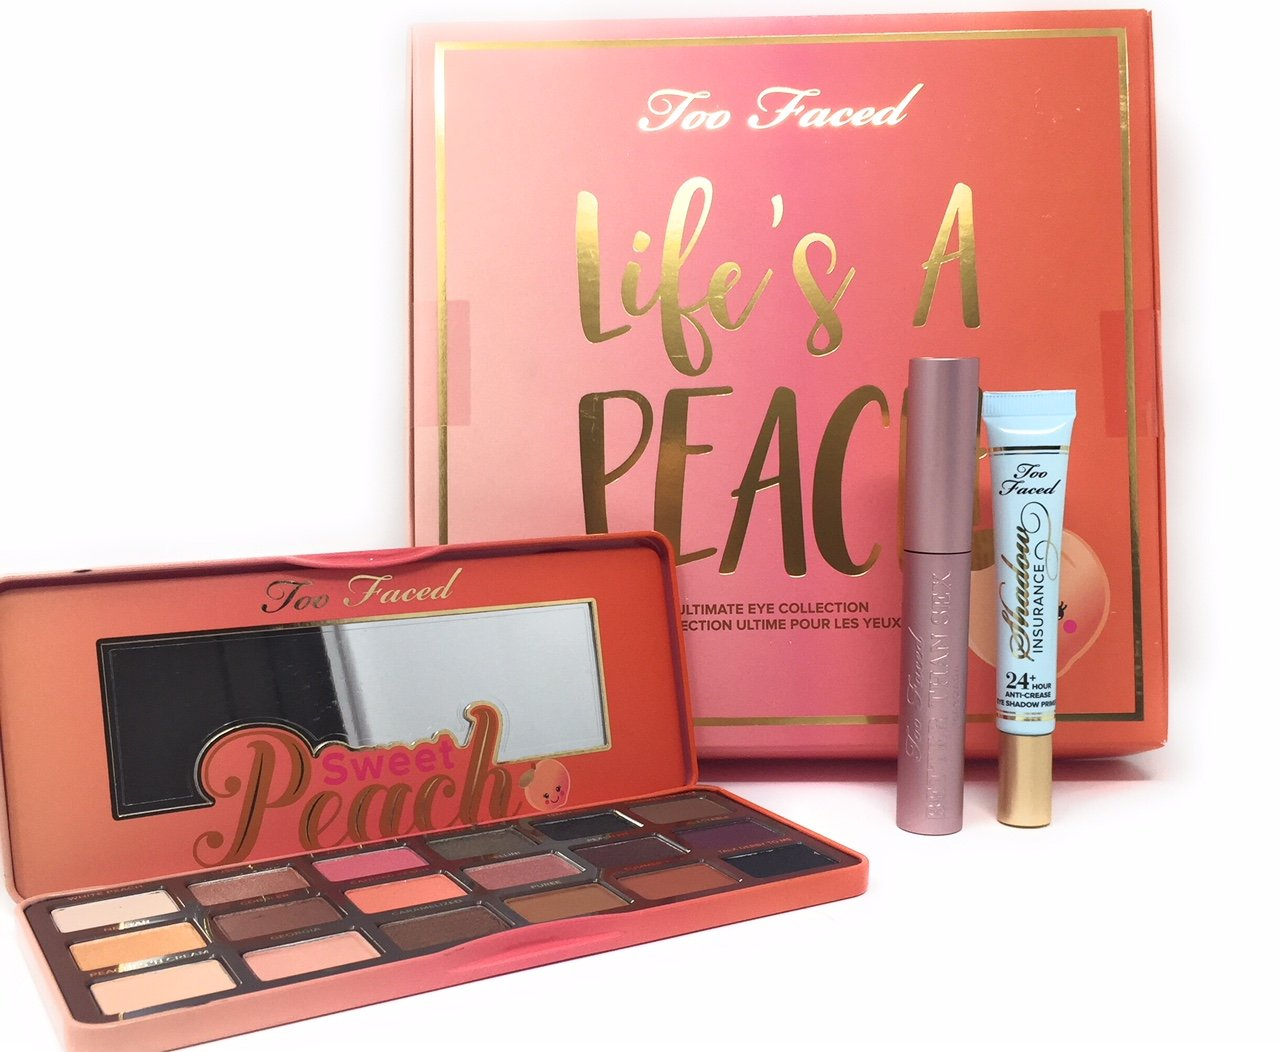 Too Faced Life s A Peach Ultimate Eye Collection Set Palette Better Than Sex Mascara Plus Primer